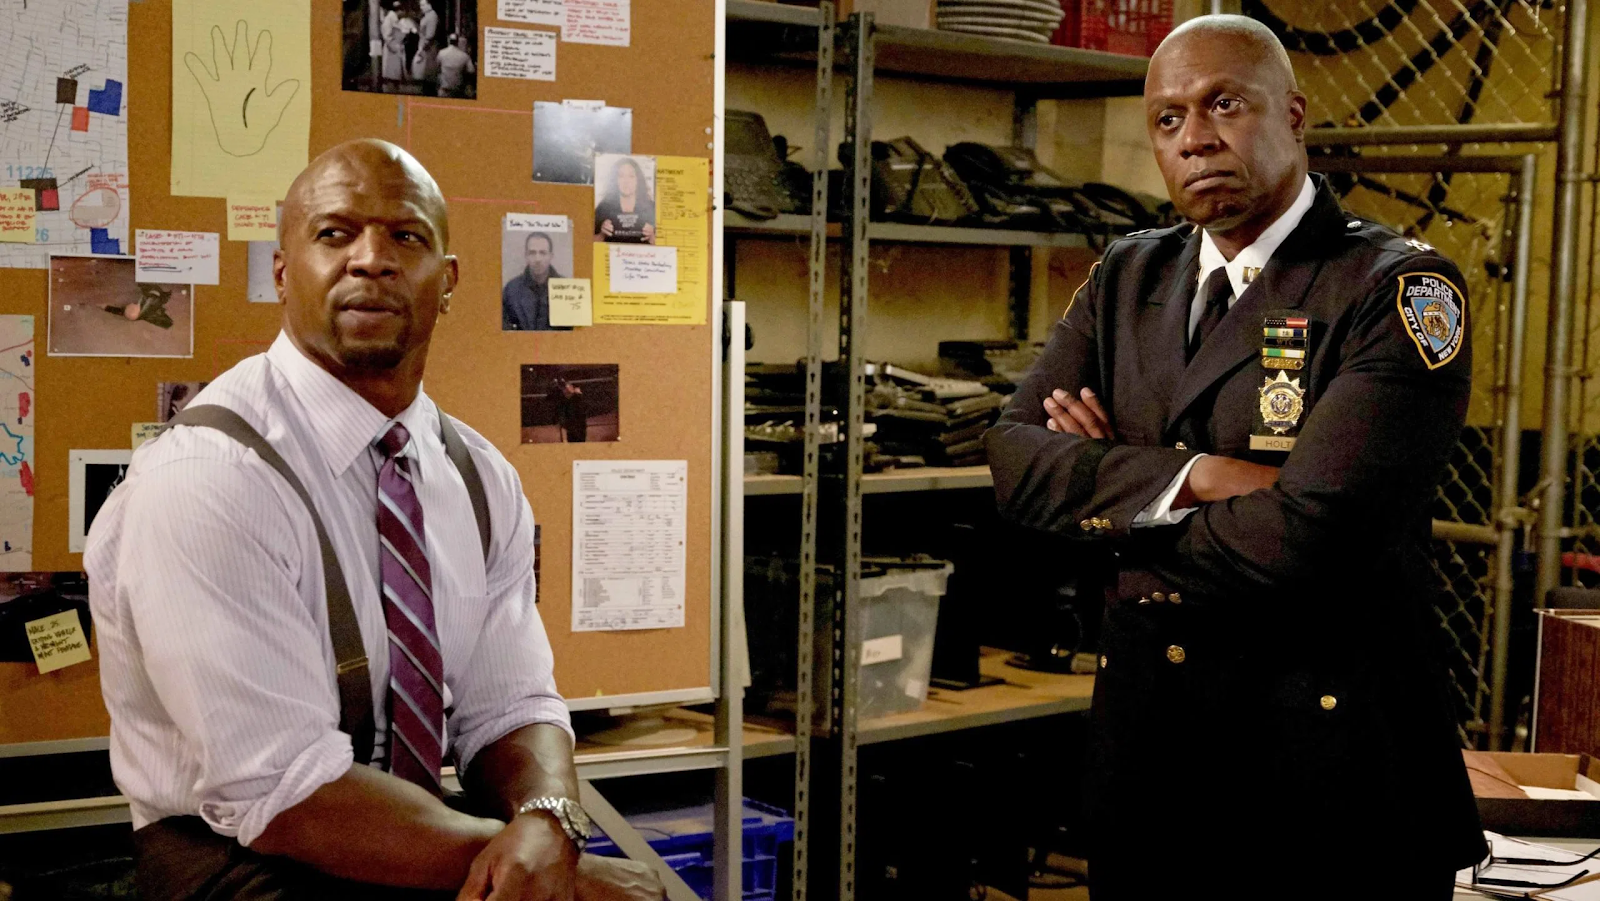 Terry and Holt, two Black police officers, in front of an evidence-filled cork board.